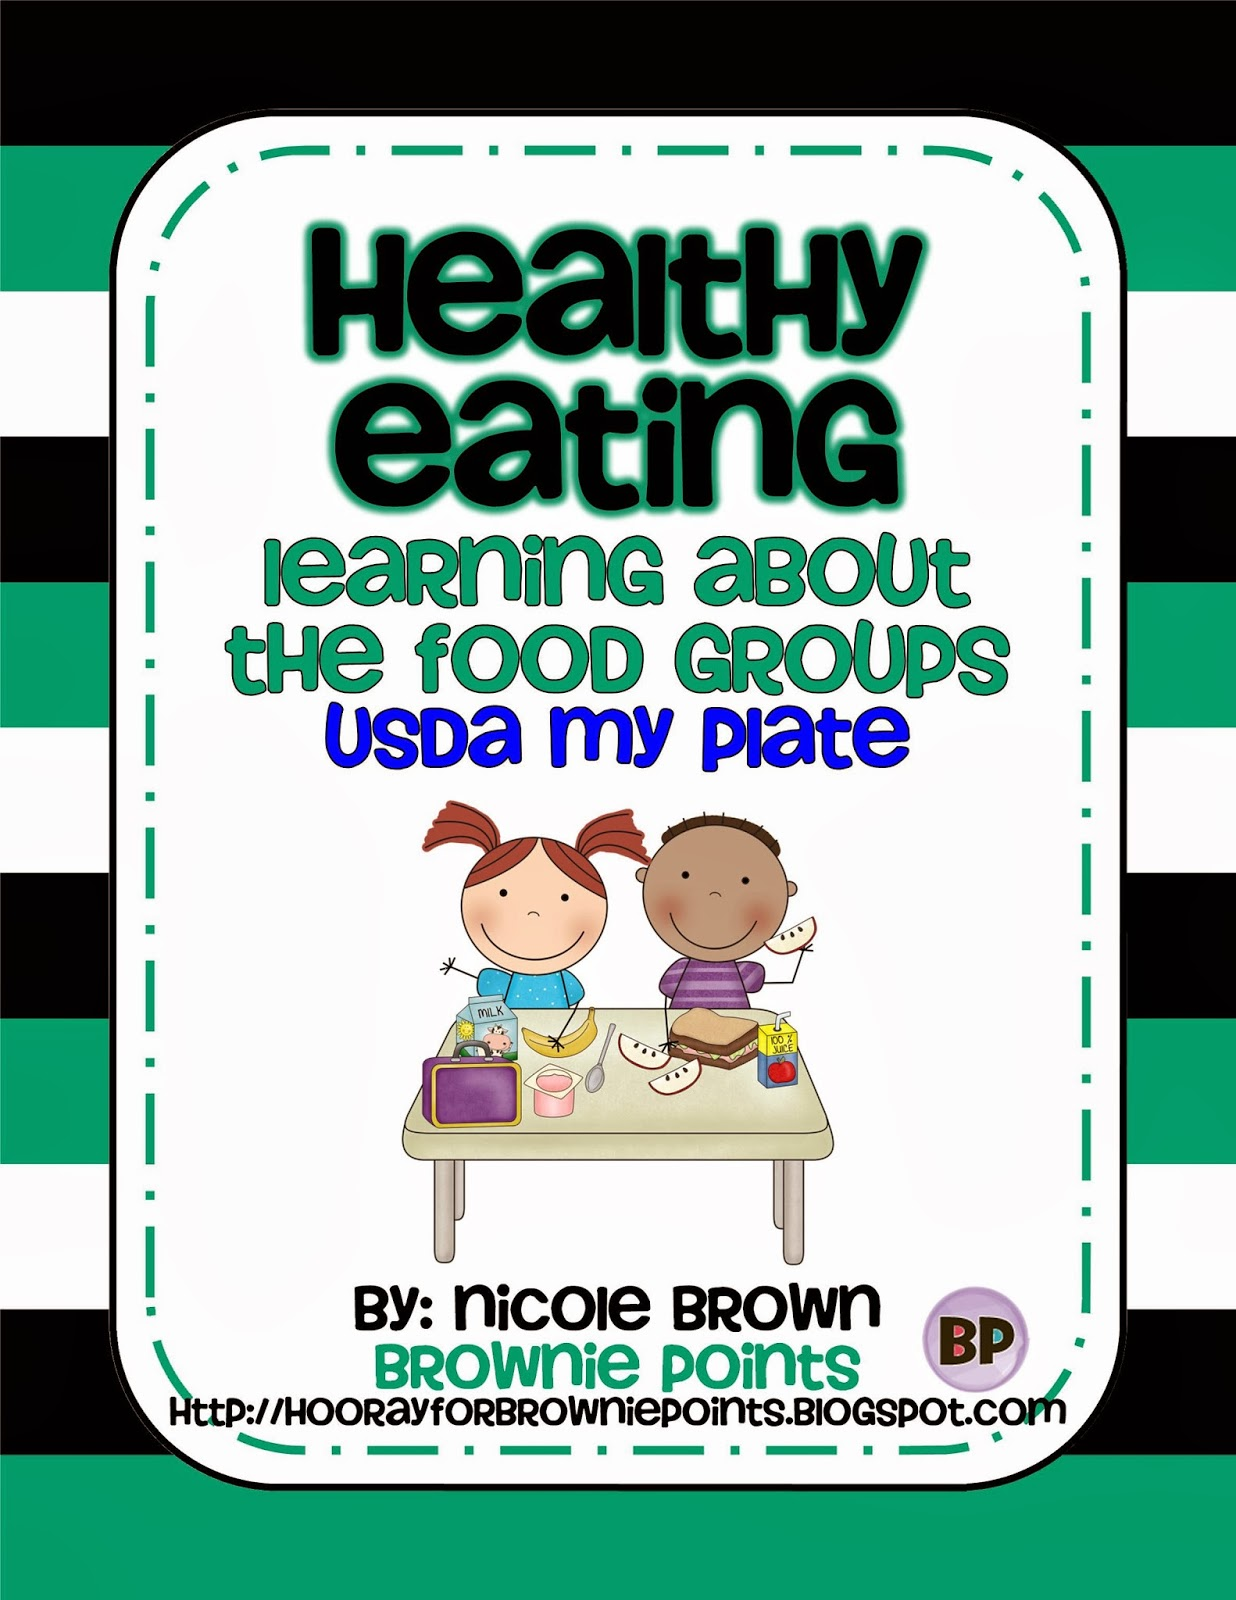 http://www.teacherspayteachers.com/Product/Healthy-Eating-Learning-About-the-Food-Groups-My-Plate-1030686